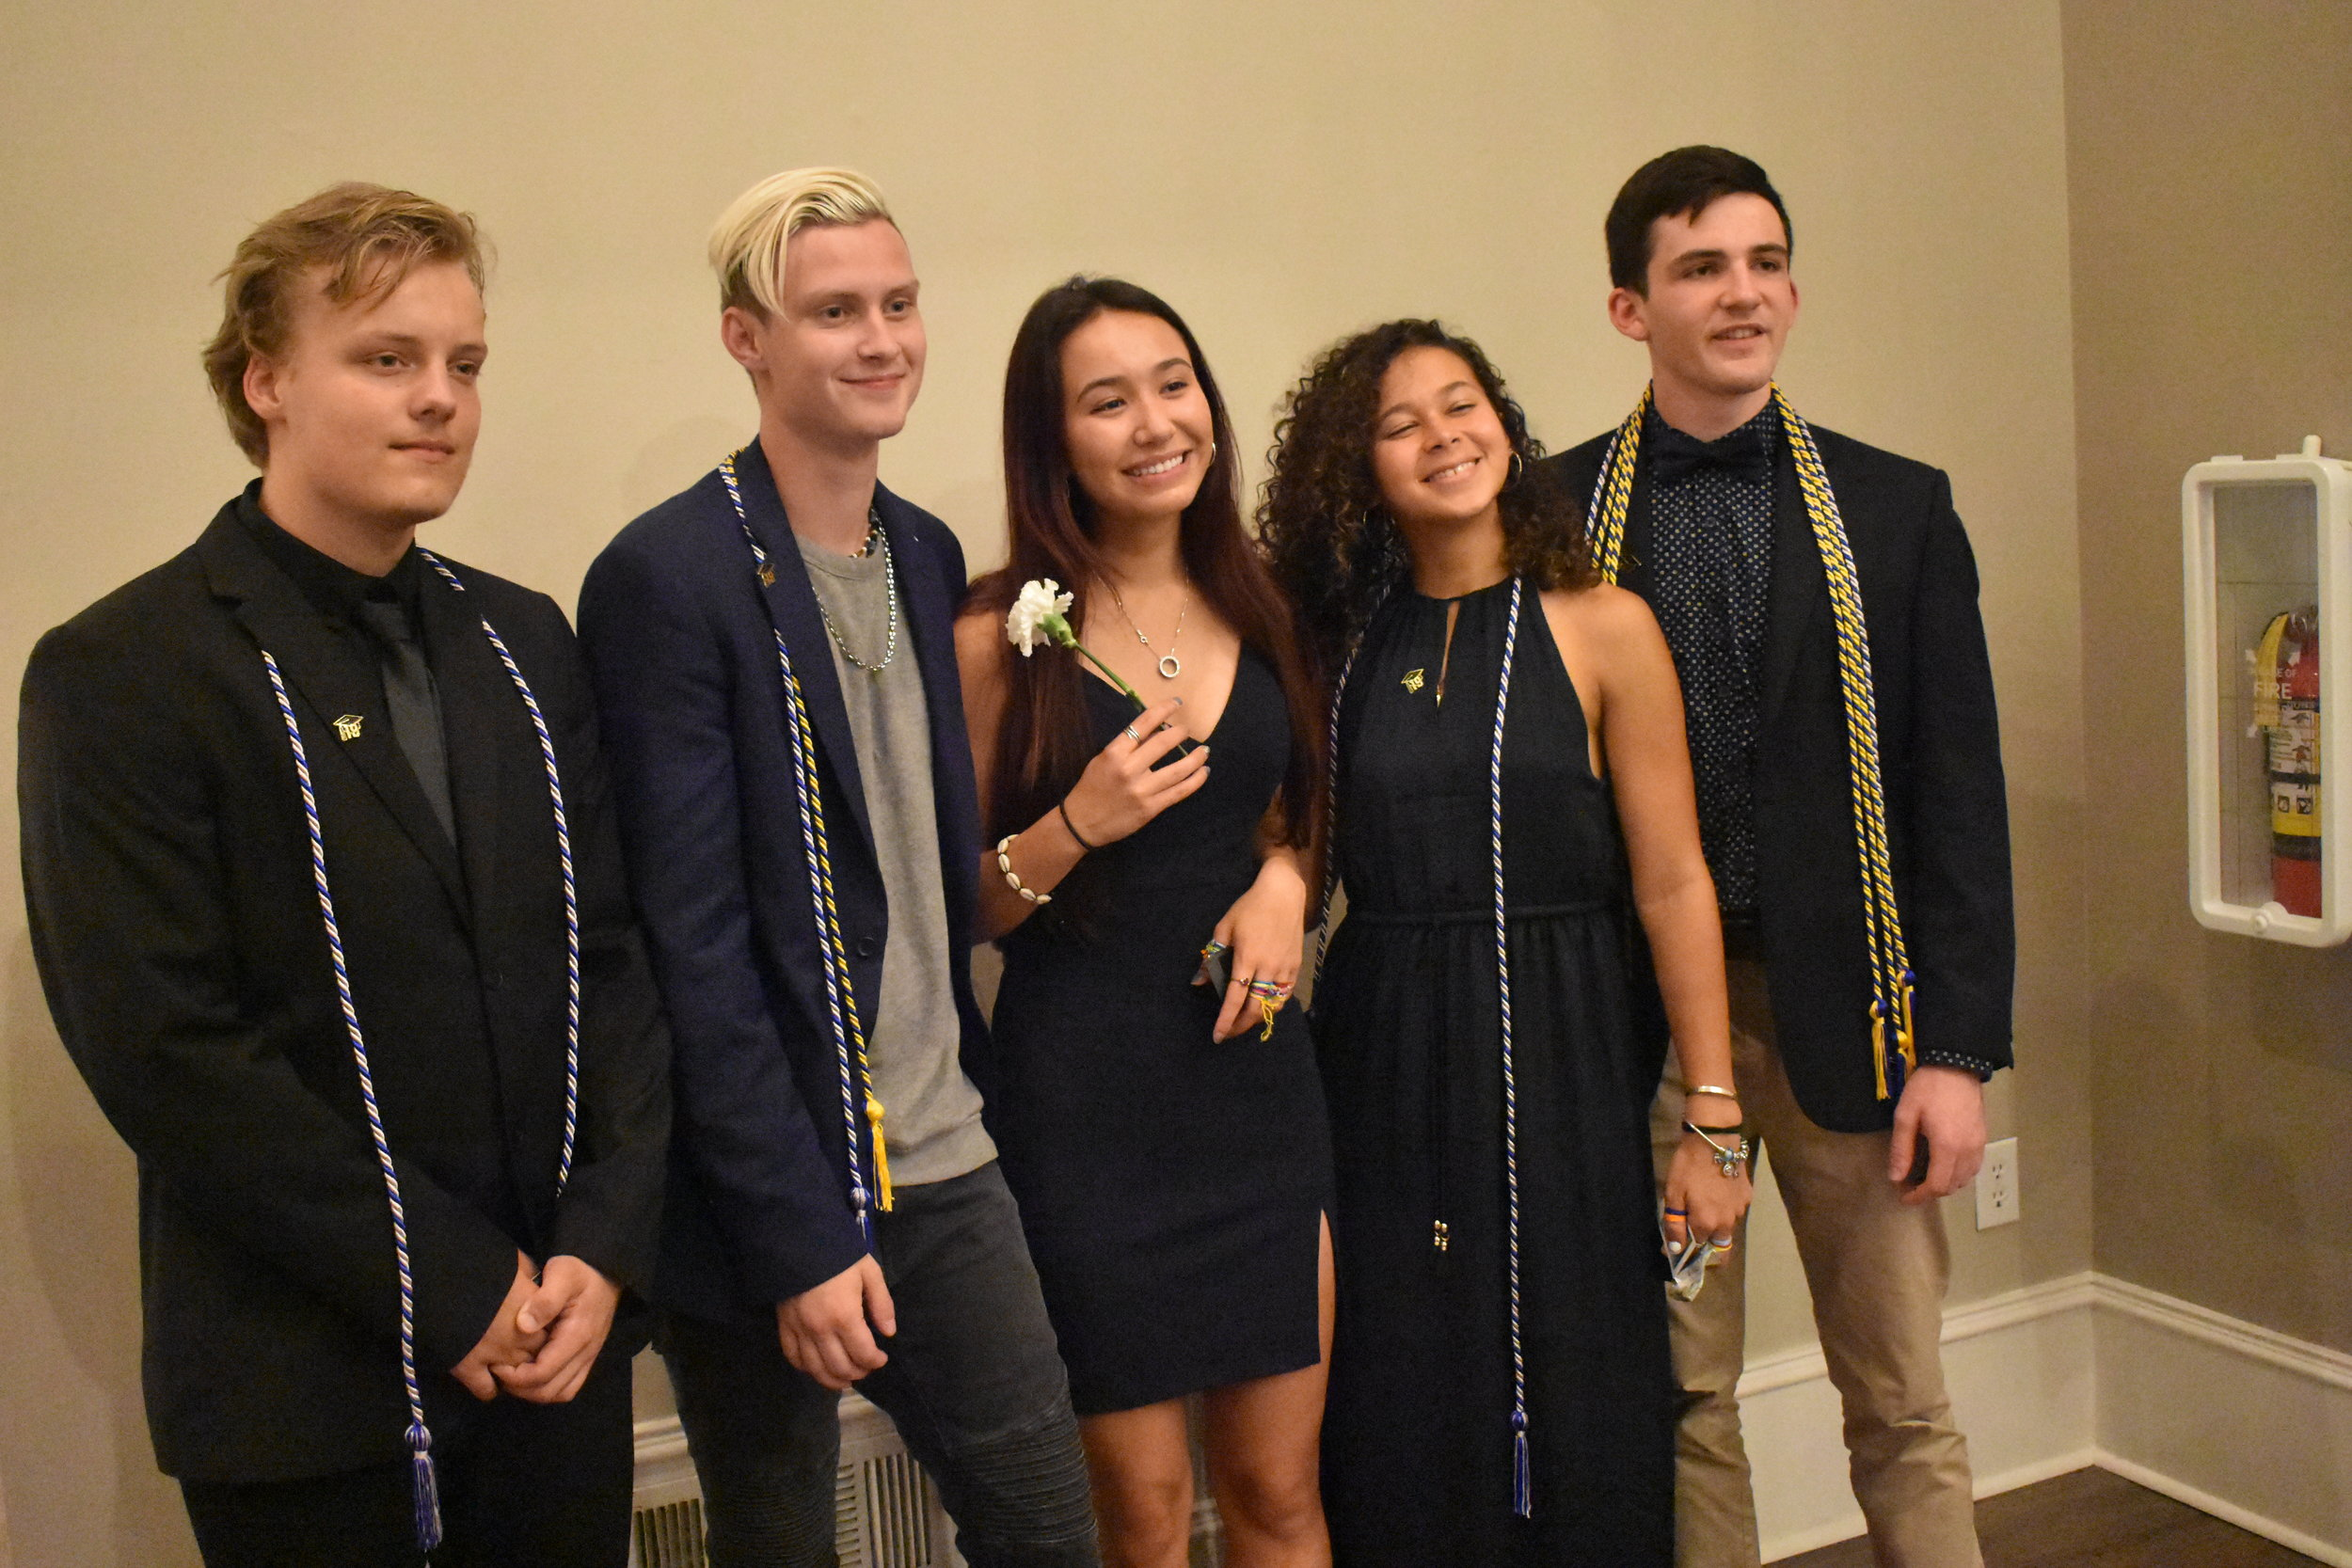 Senior Cording Ceremony - Seniors receive graduation cords at the Senior Dinner based on how many years they have completed at Brandon Hall.